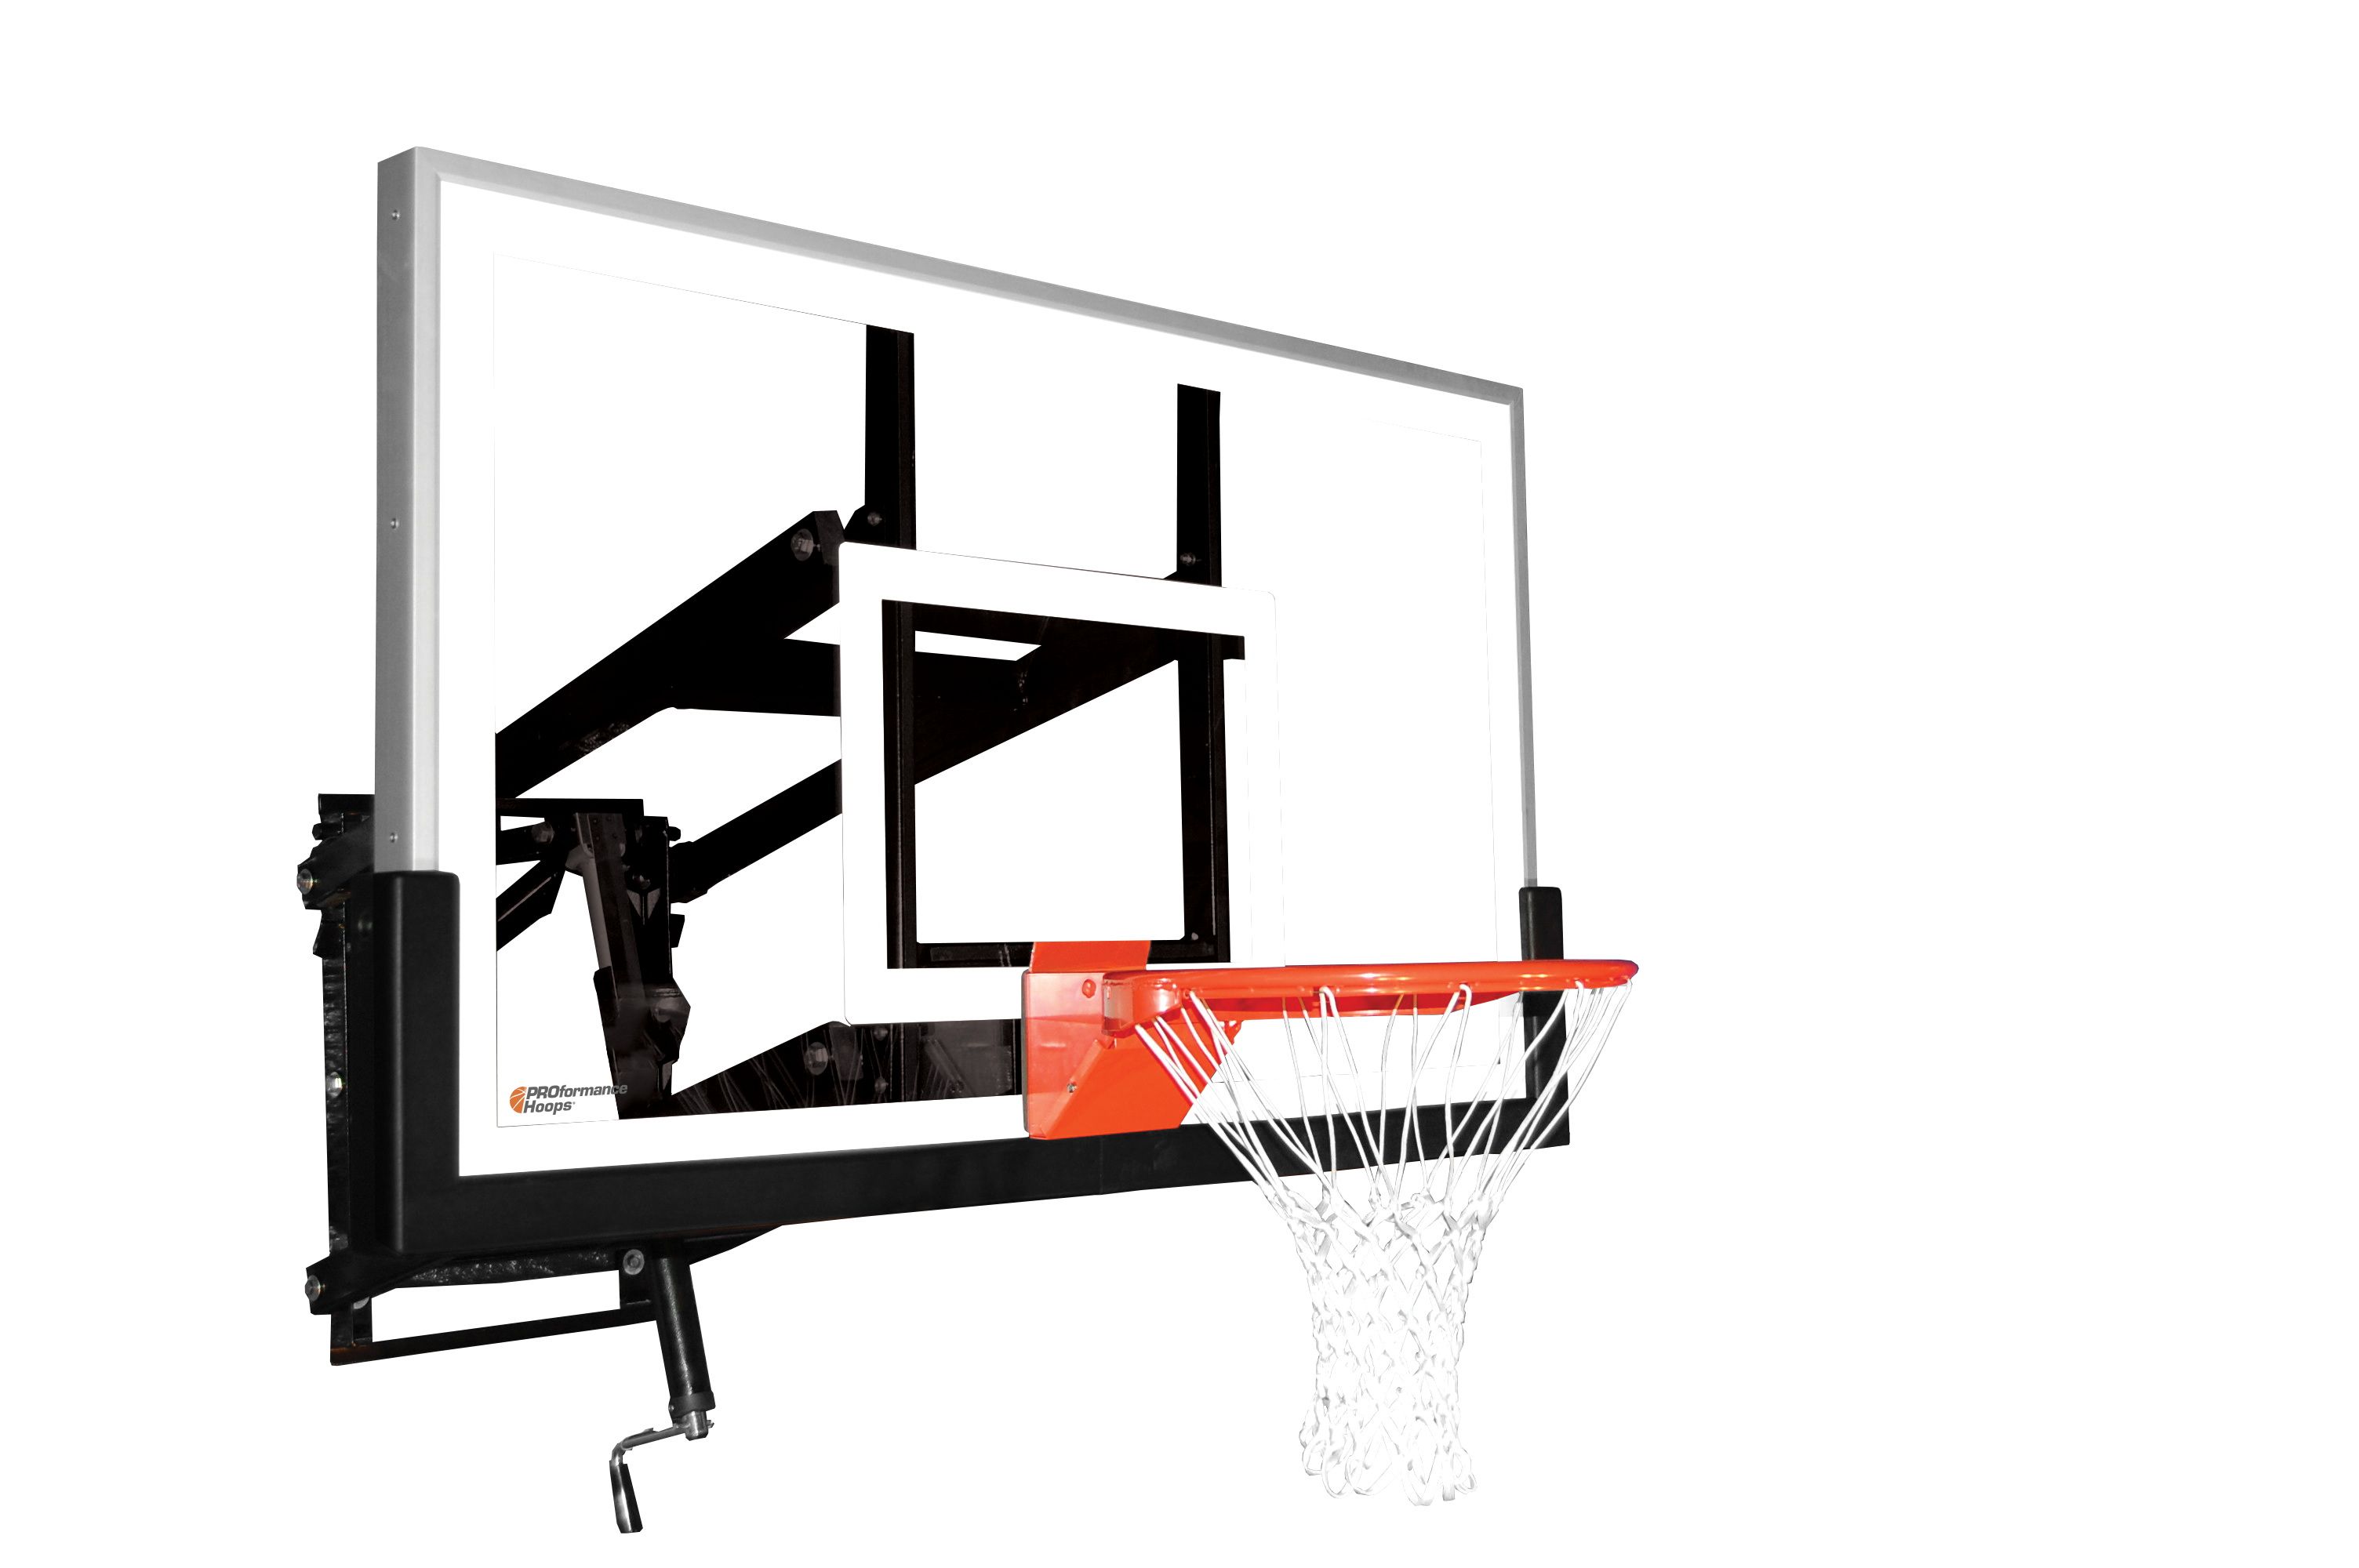 Basketball net backboard clipart graphic transparent library PROformance Hoops Wall Mount Basketball Goal - 38